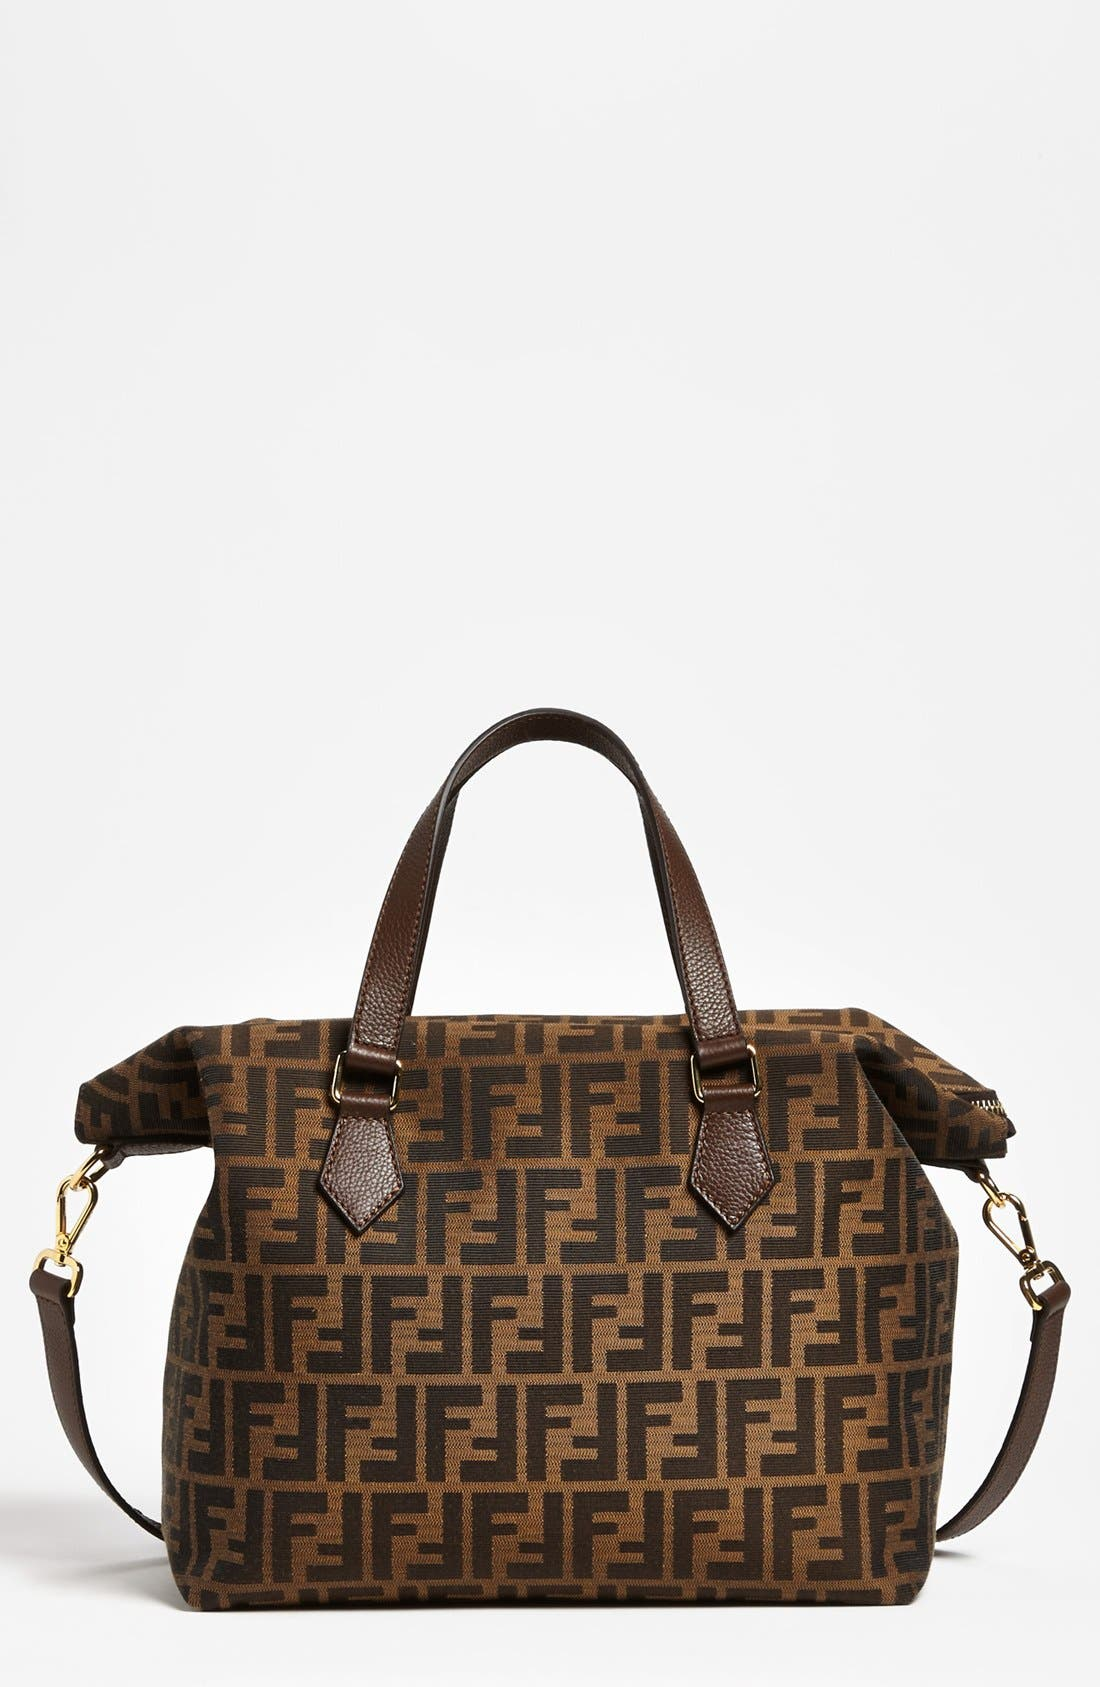 Alternate Image 1 Selected - Fendi 'Large Zucca' Jacquard Satchel